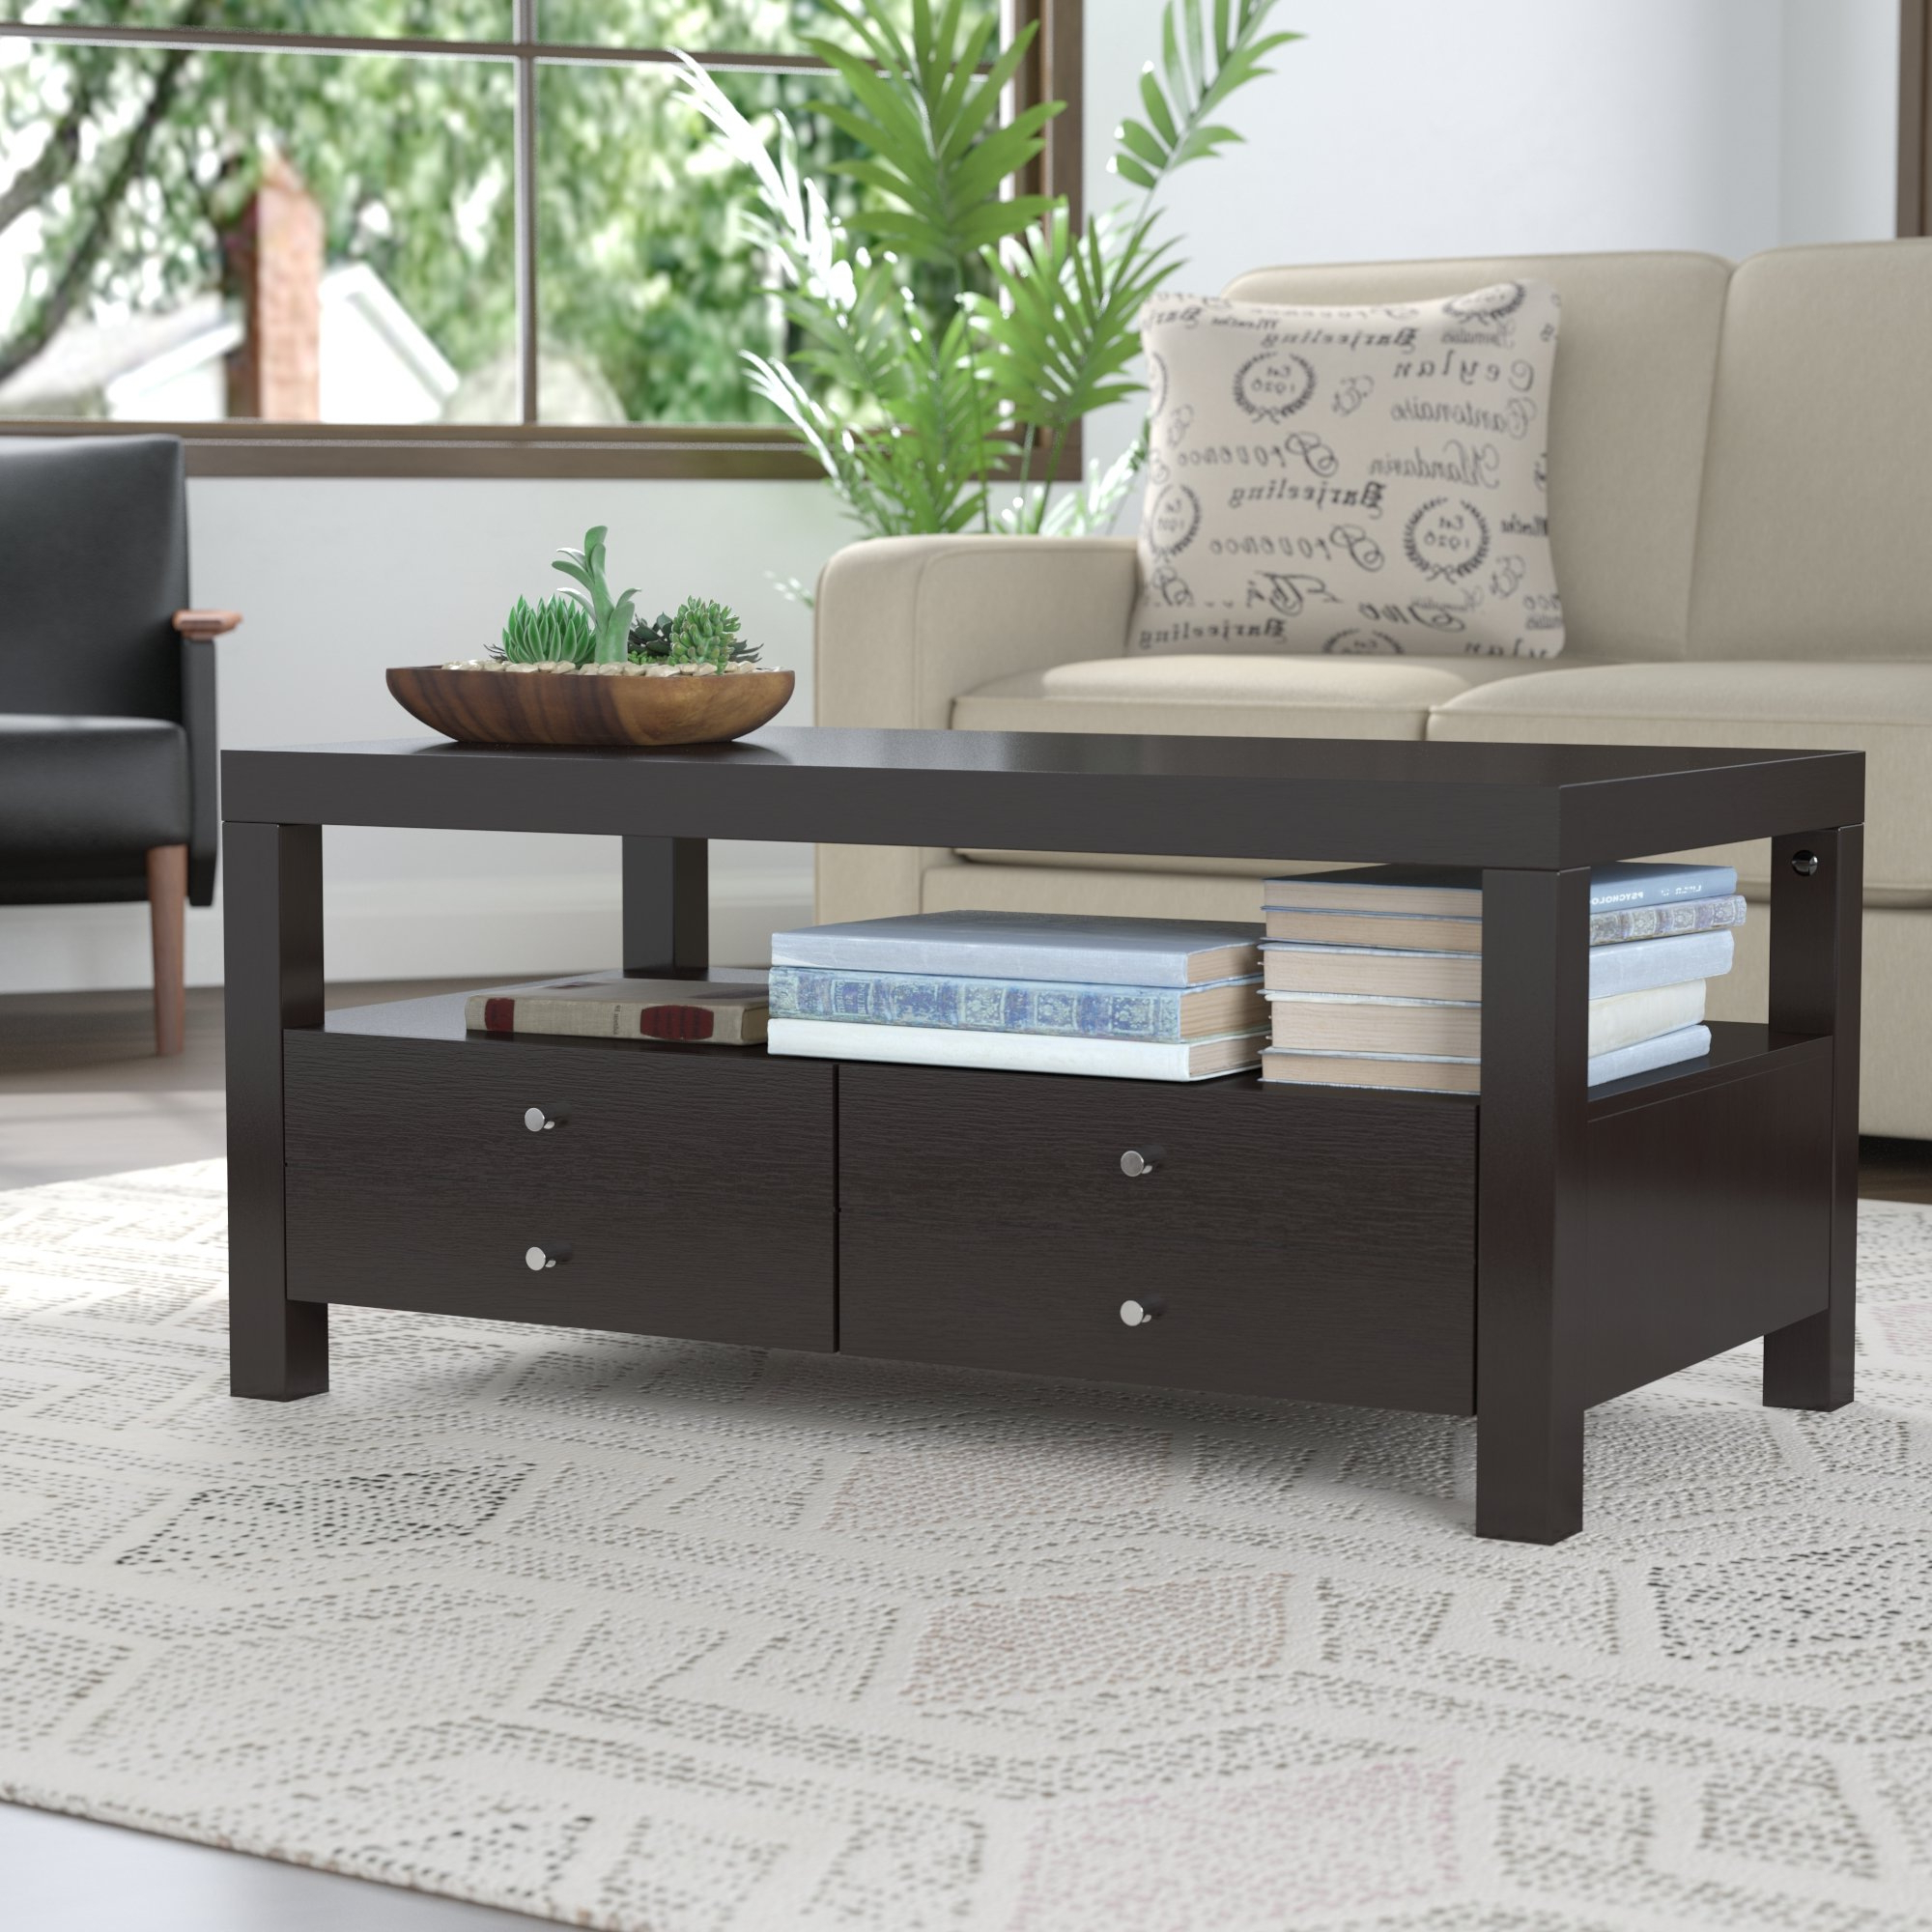 Wayfair With Regard To Large Scale Chinese Farmhouse Coffee Tables (Gallery 16 of 20)